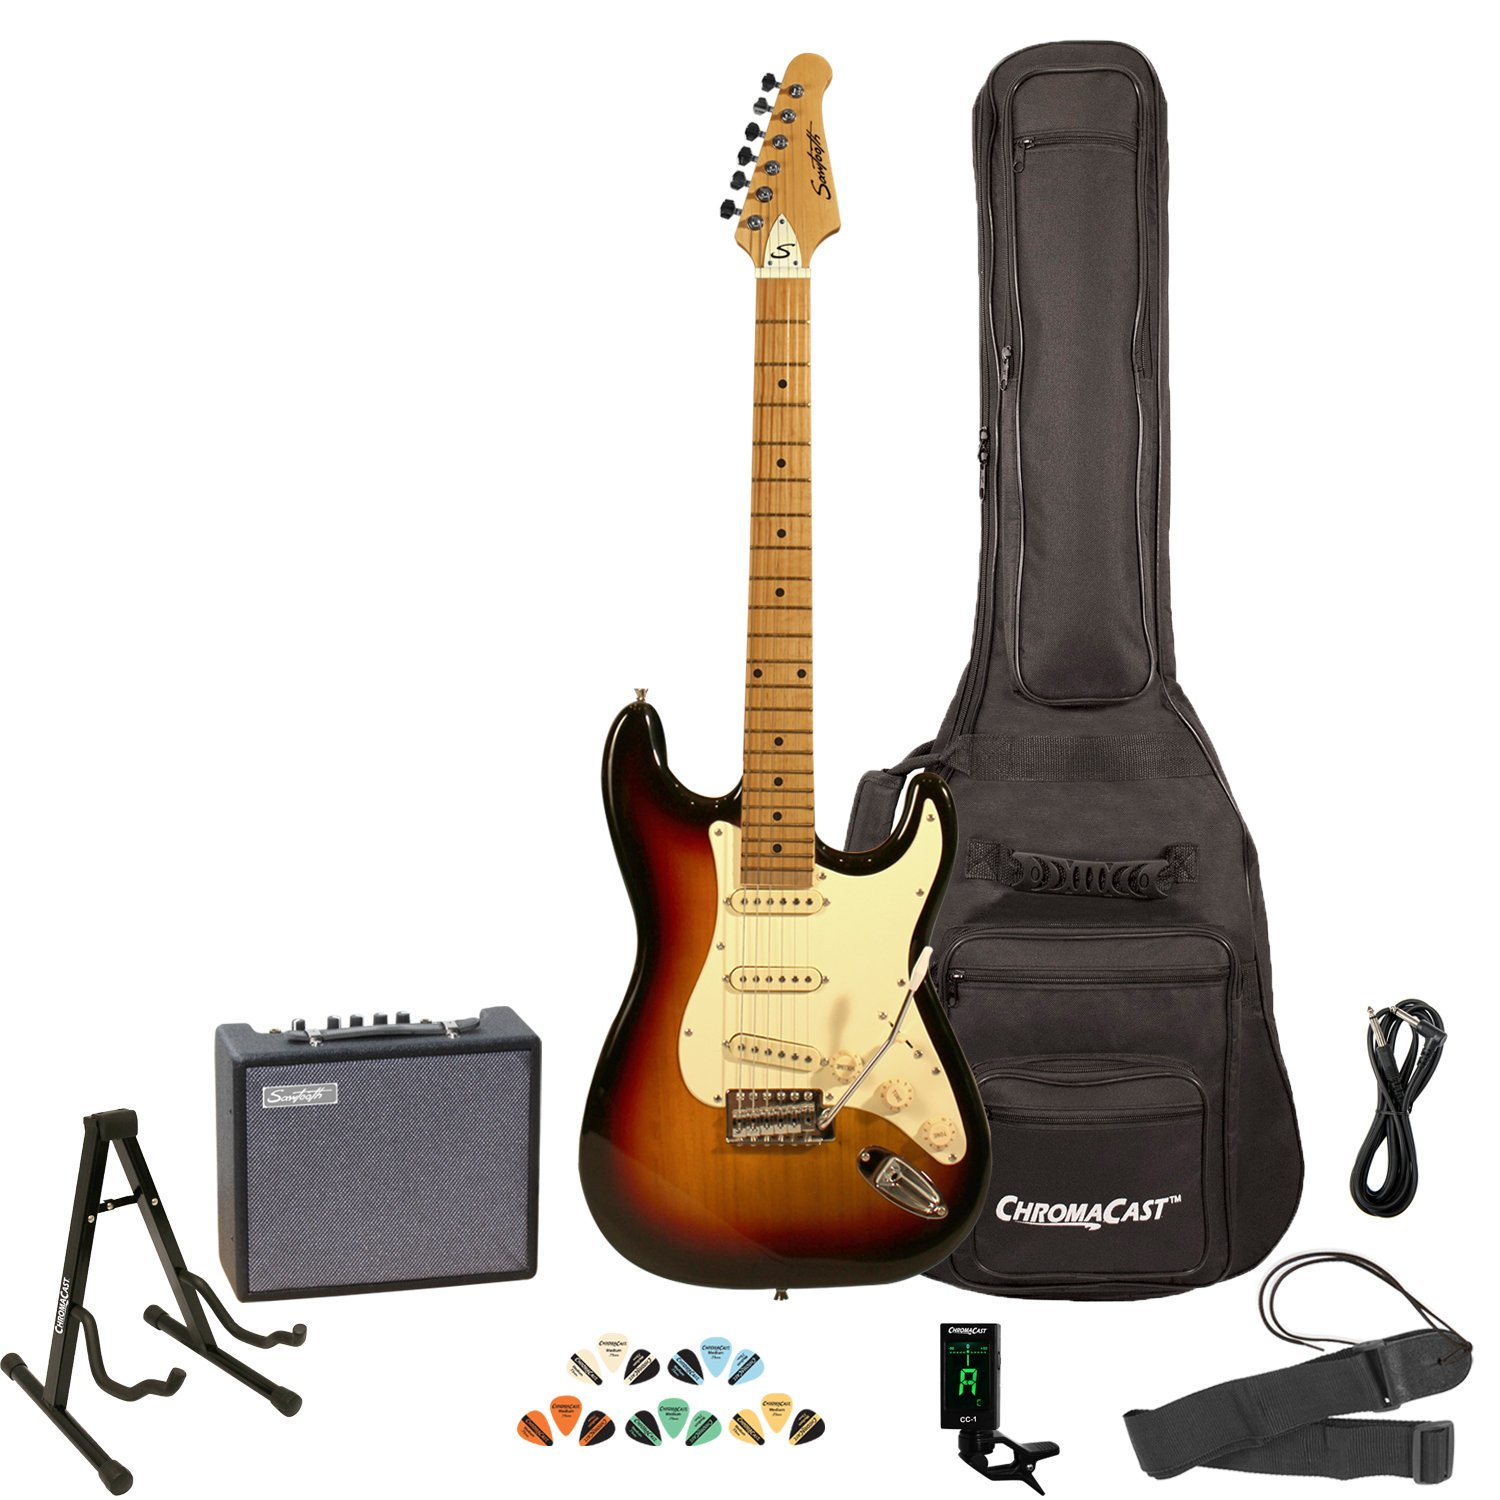 Sawtooth ST-ES-SBVC-KIT-3 Sunburst Electric Guitar with Vintage White Pickguard best beginner electric guitar packages